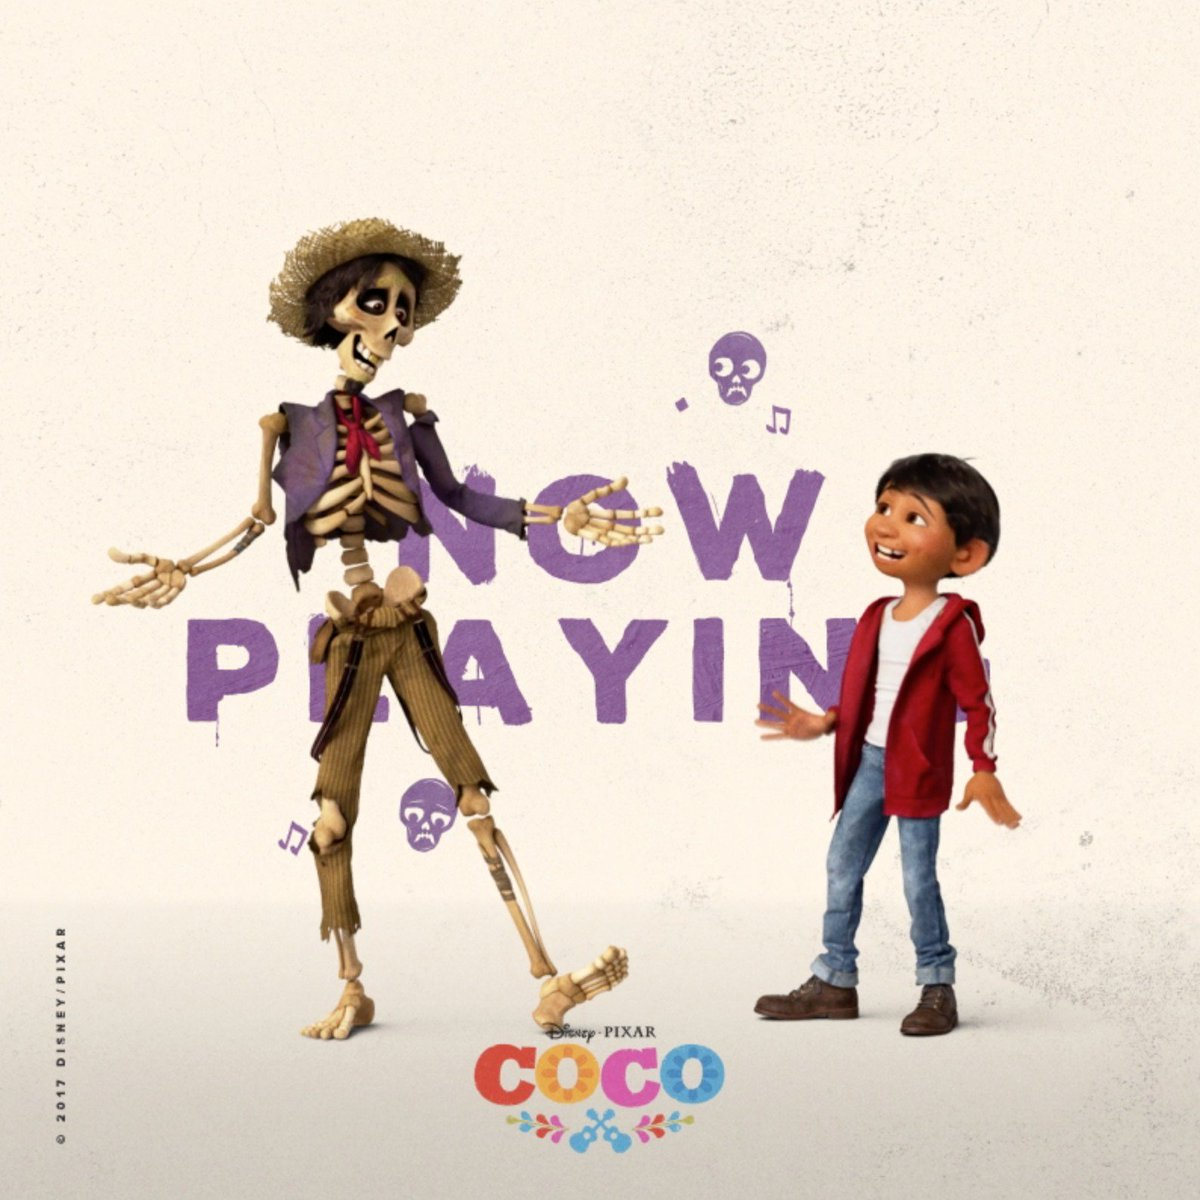 Stick together and see #PixarCoco in theatres now.